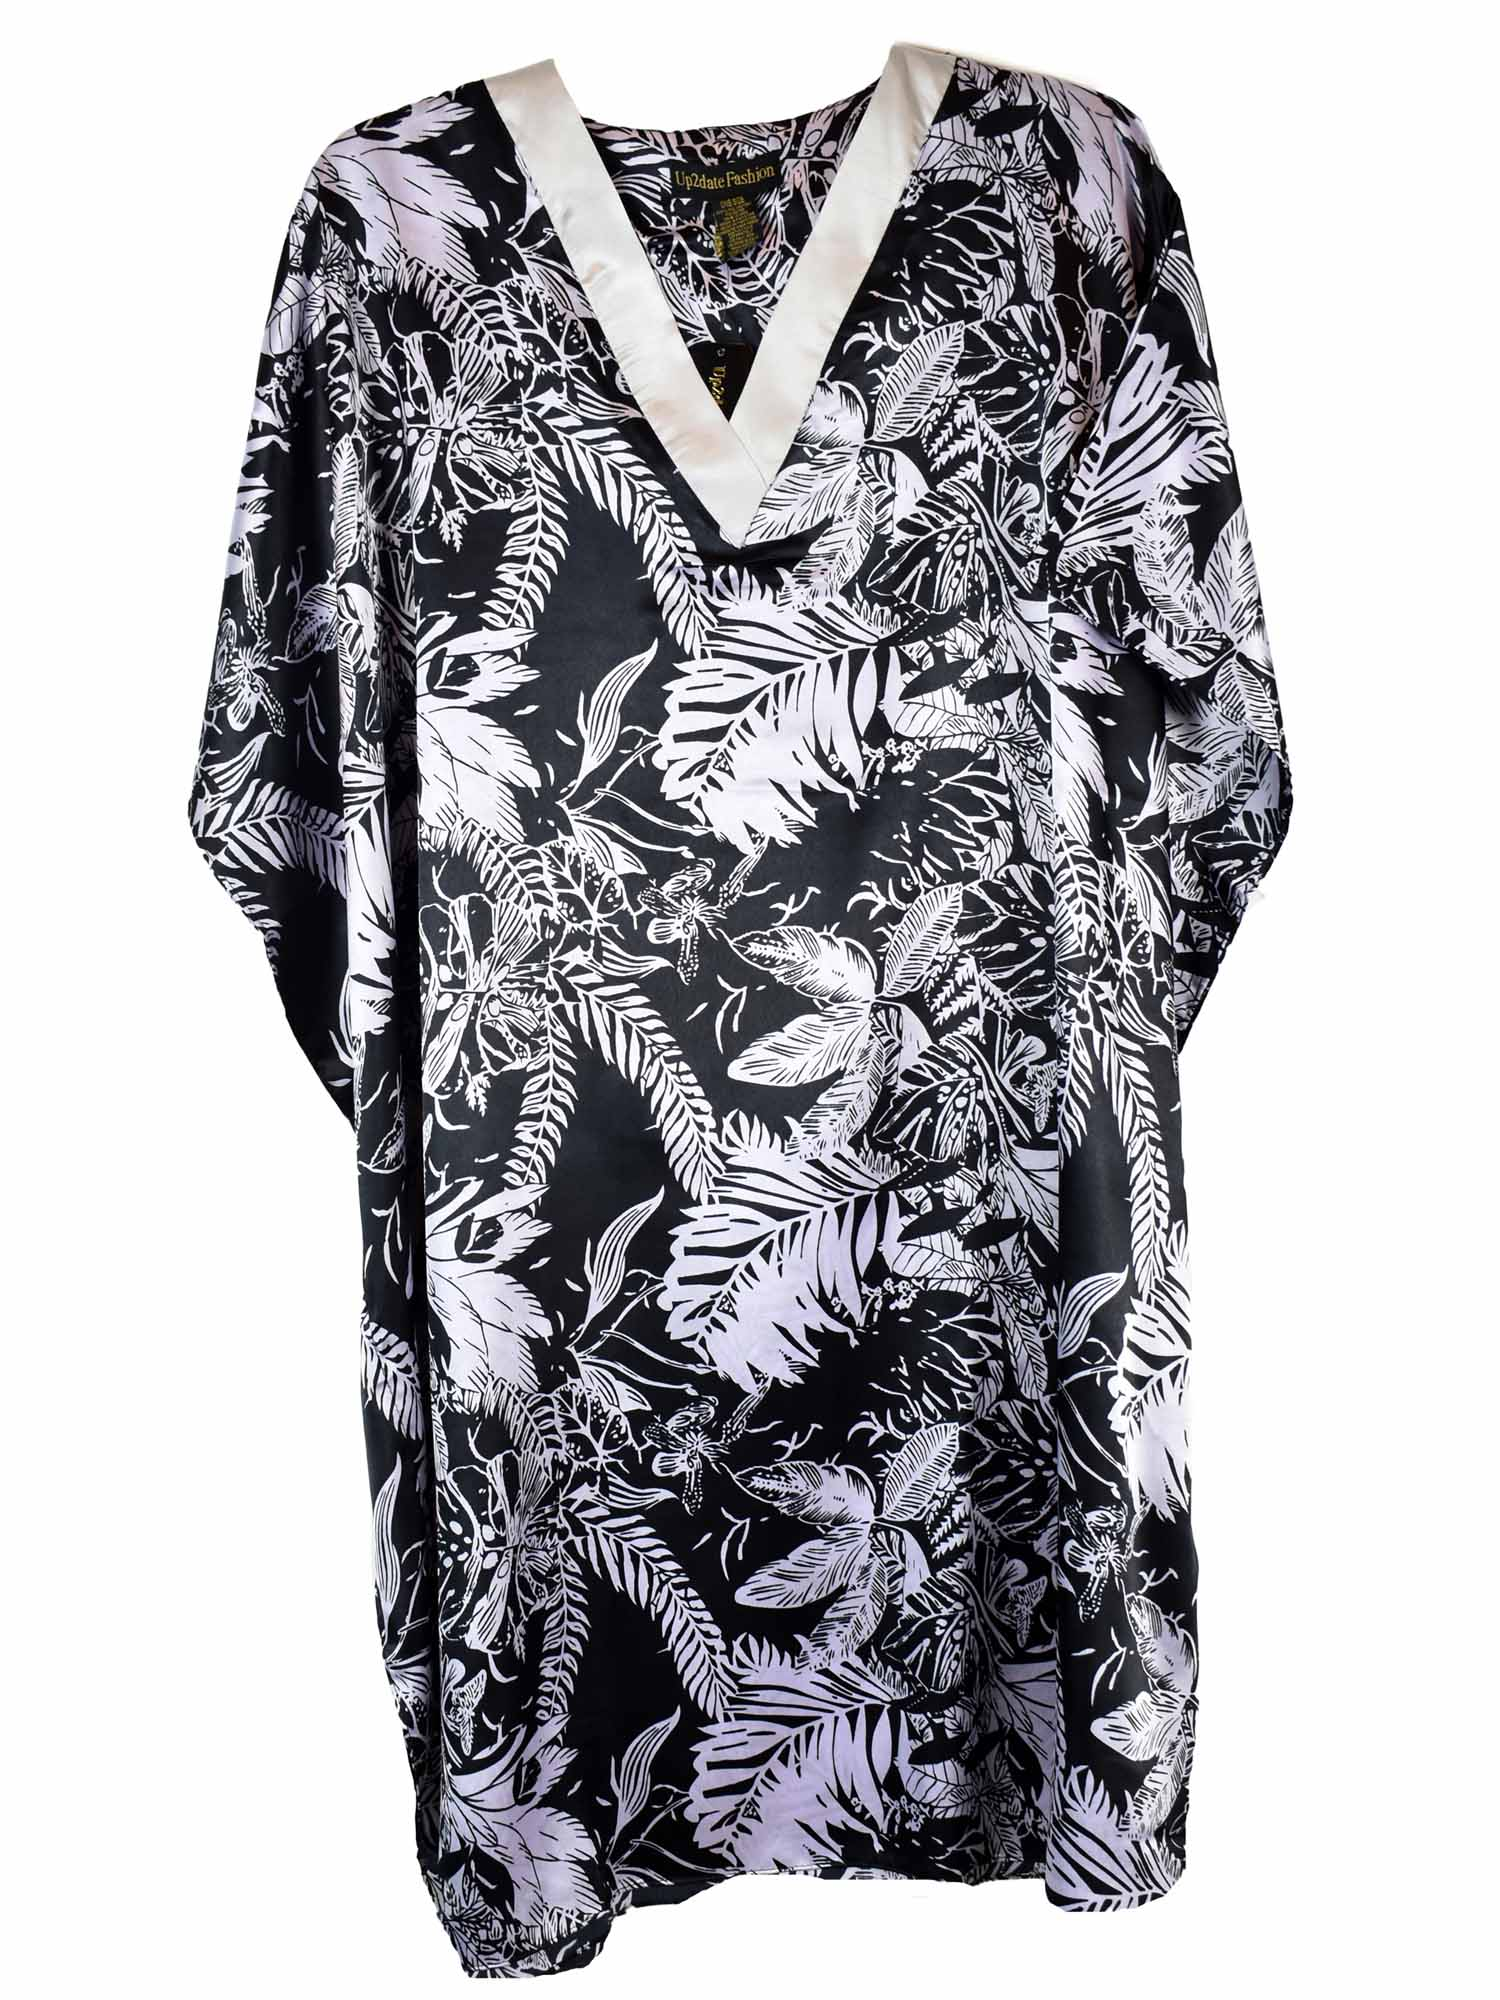 Women's Short Satin Caftan / Kaftan / Muumuu, Midnight Leaves Print